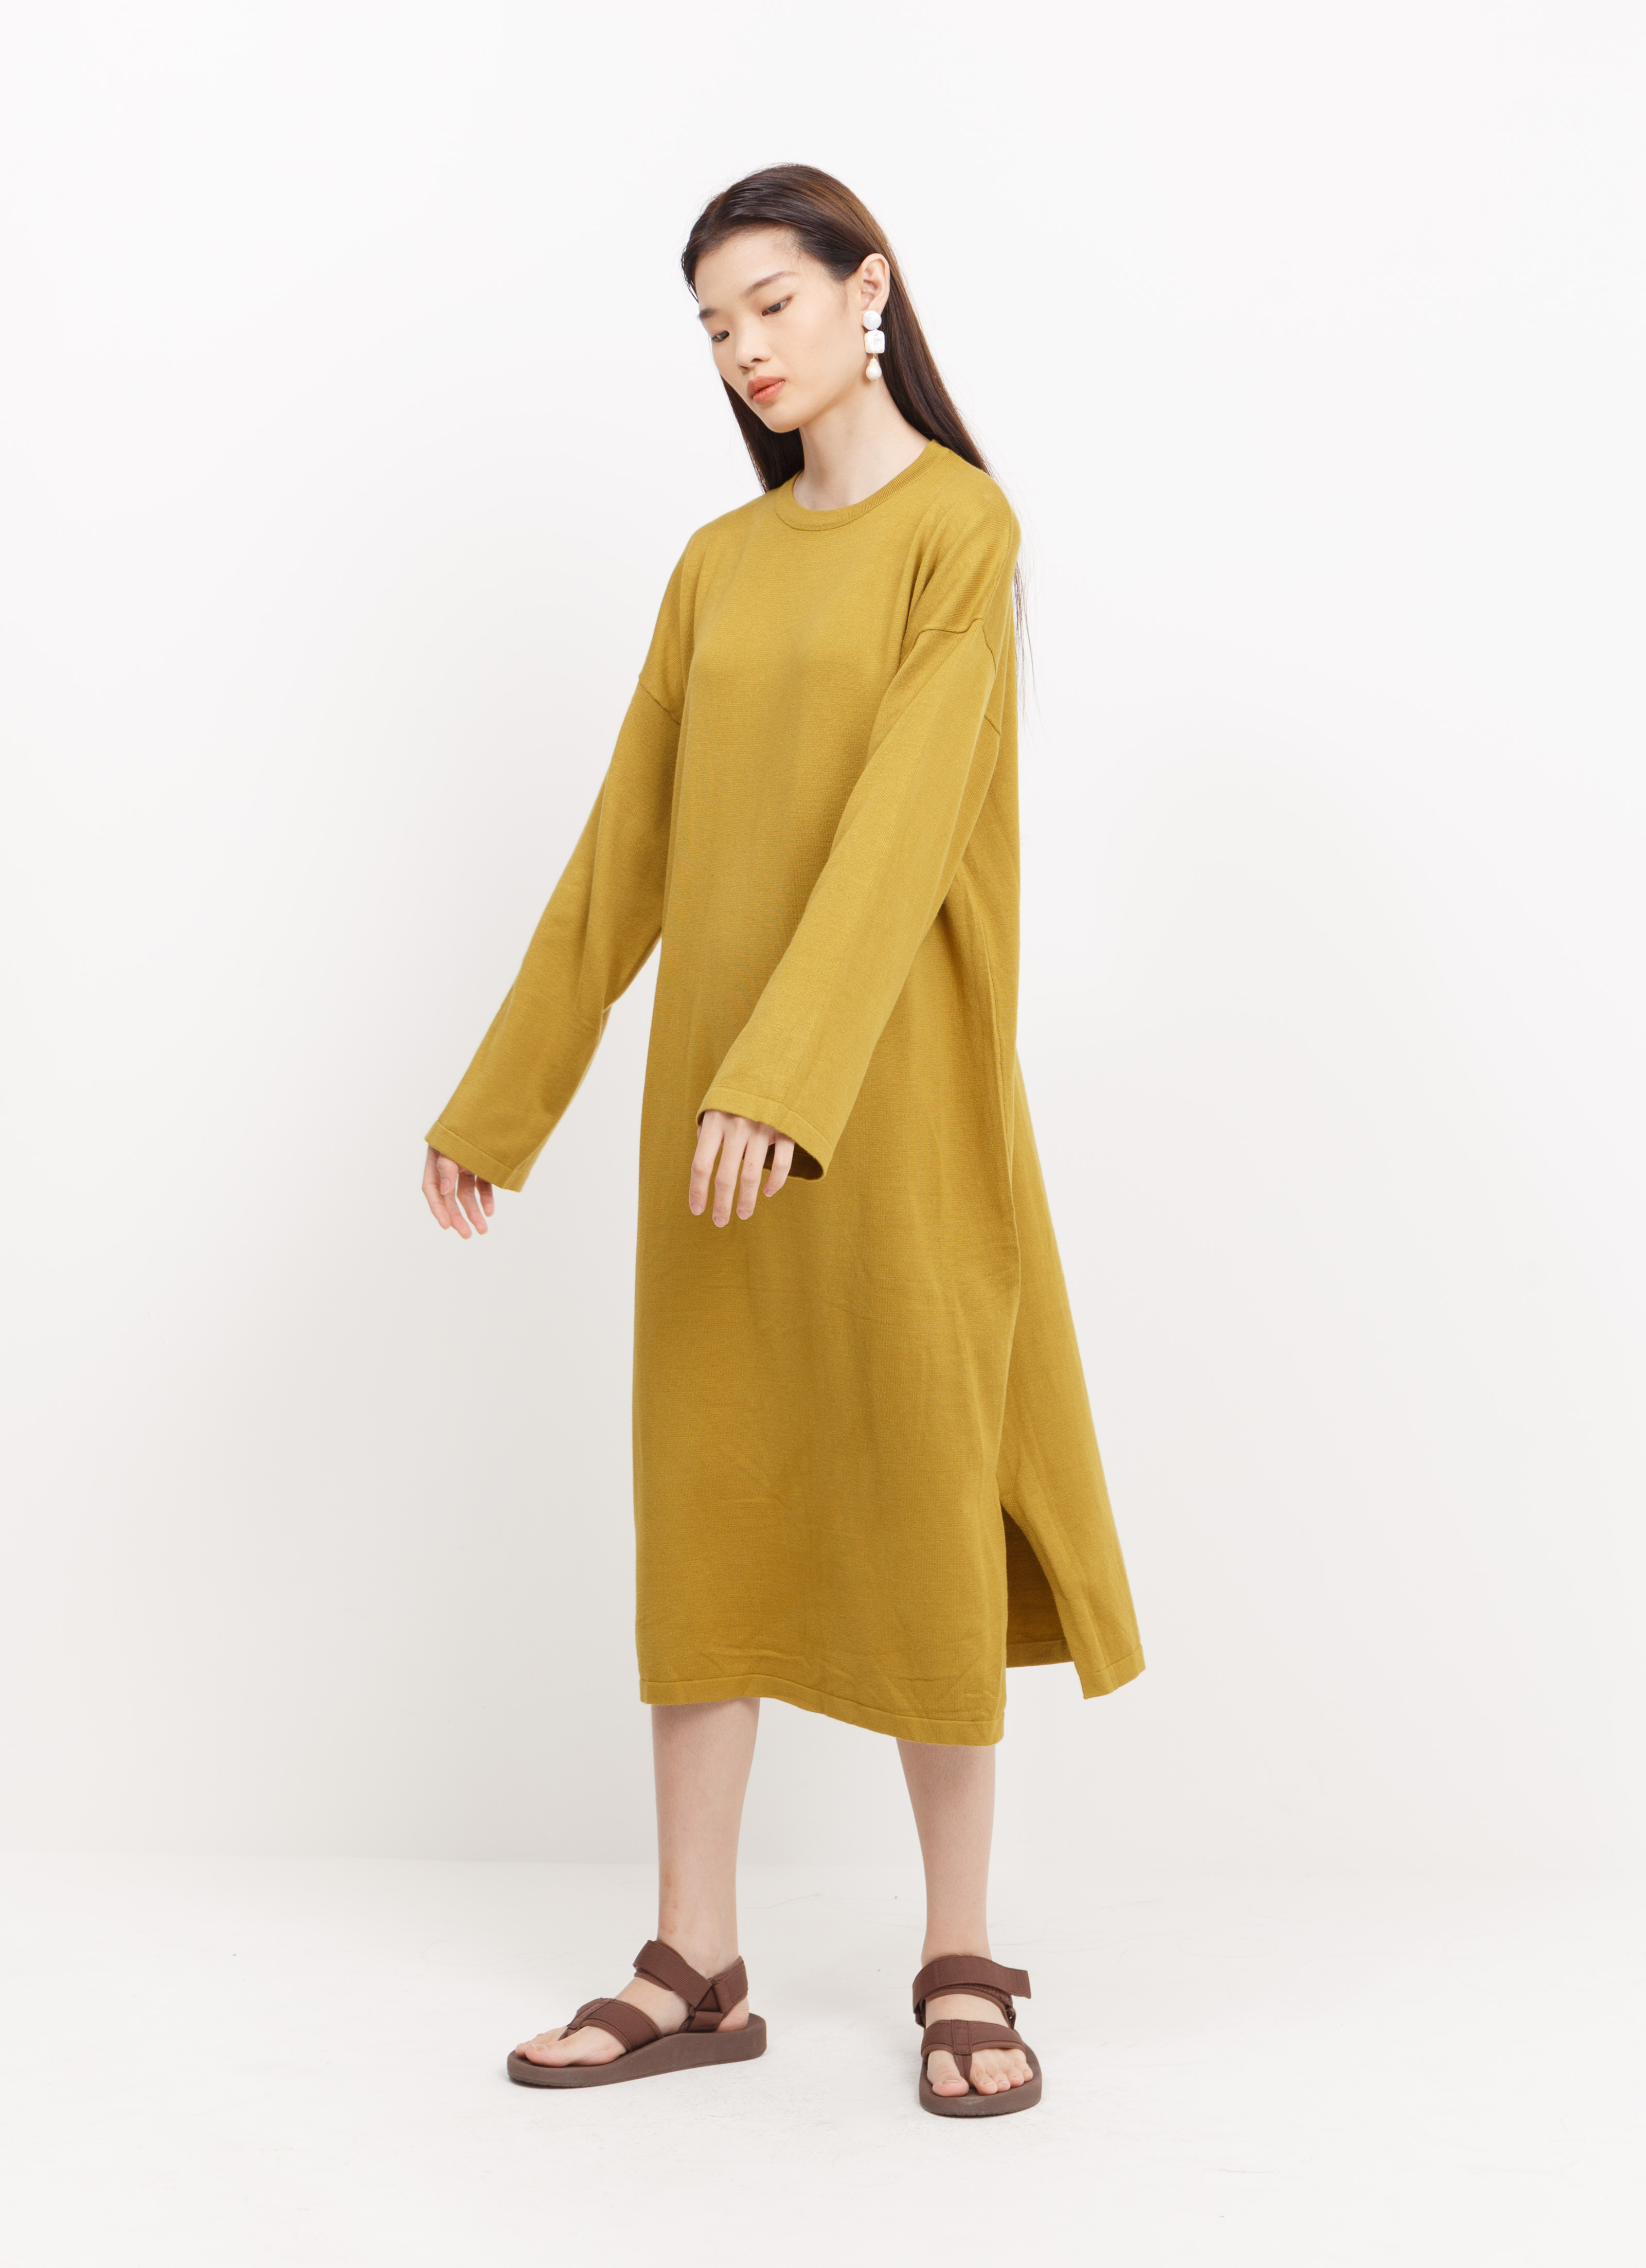 BOWN Ludovic Dress - Mustard